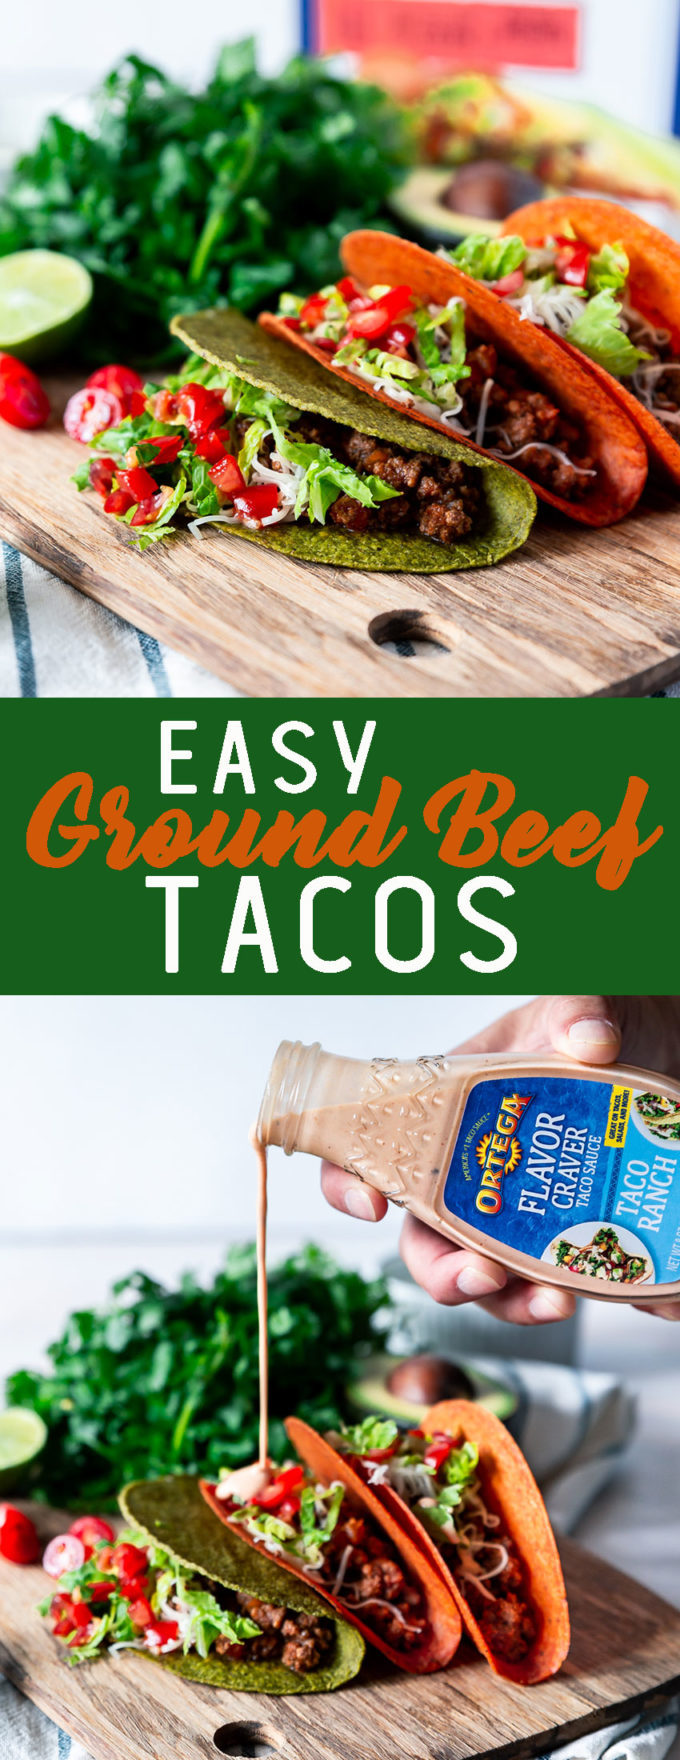 Easy ground beef tacos made in under 30 minutes, so much flavor.